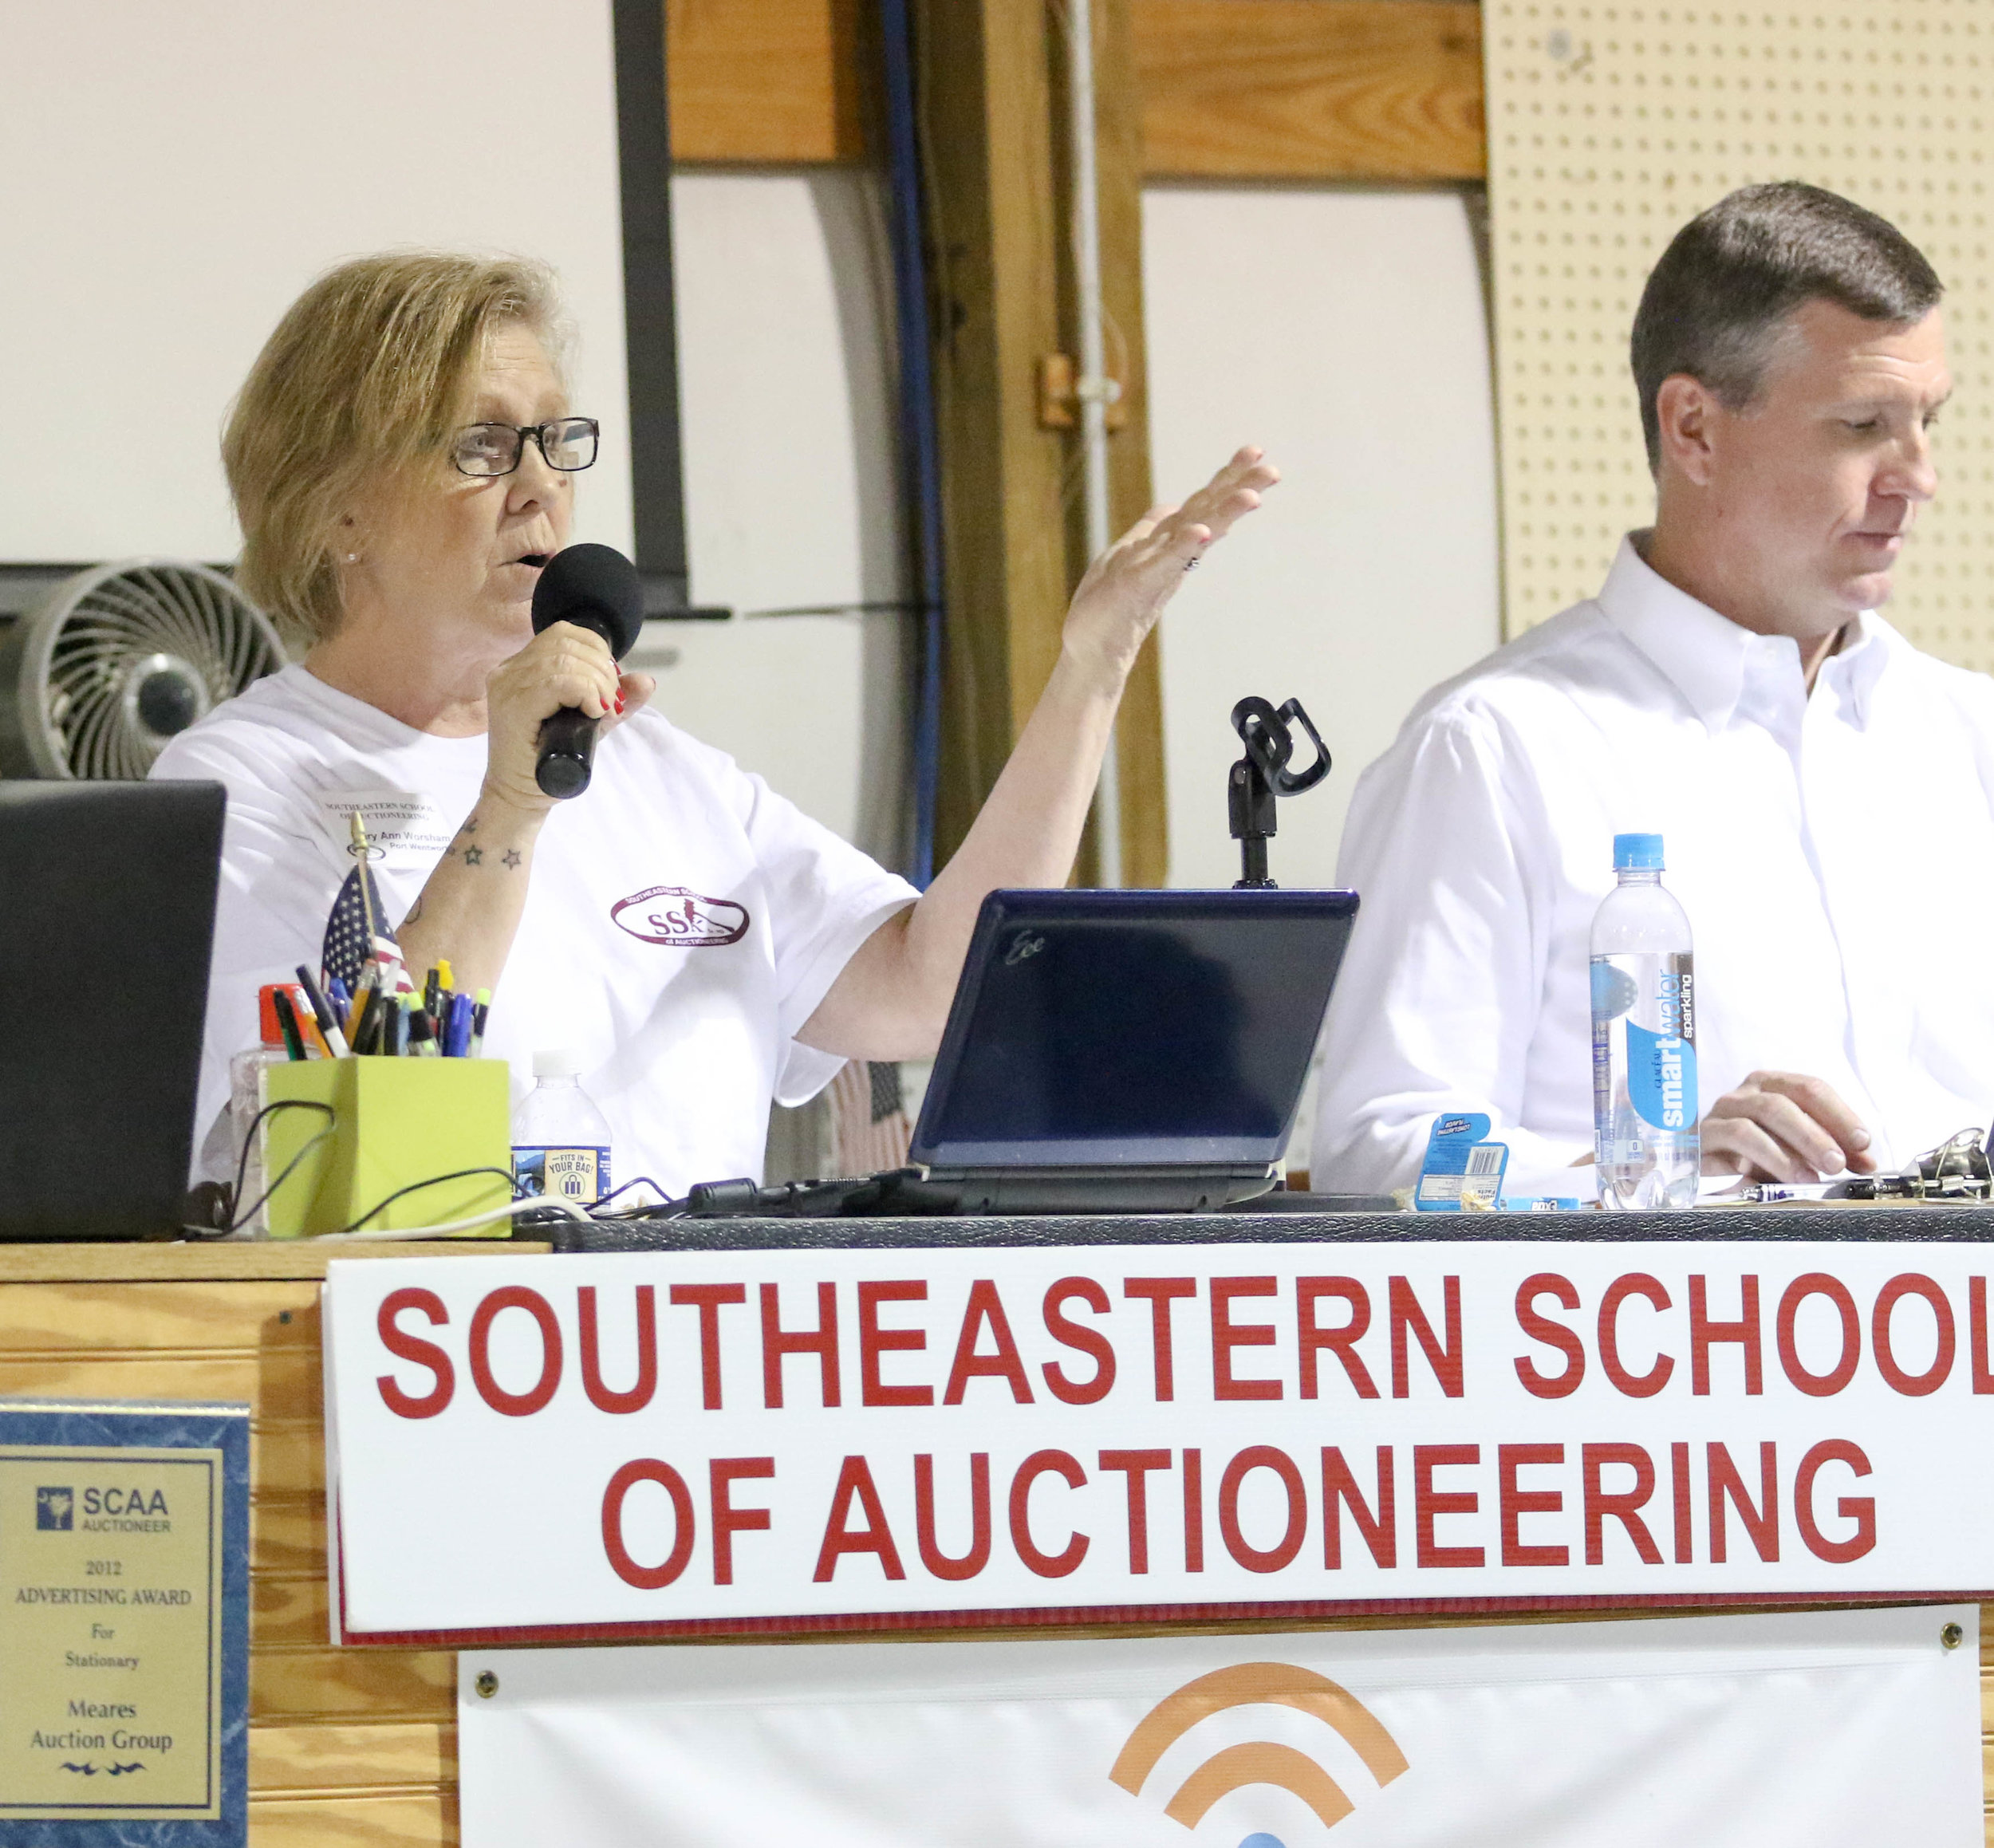 Developing Auctioneer Skills